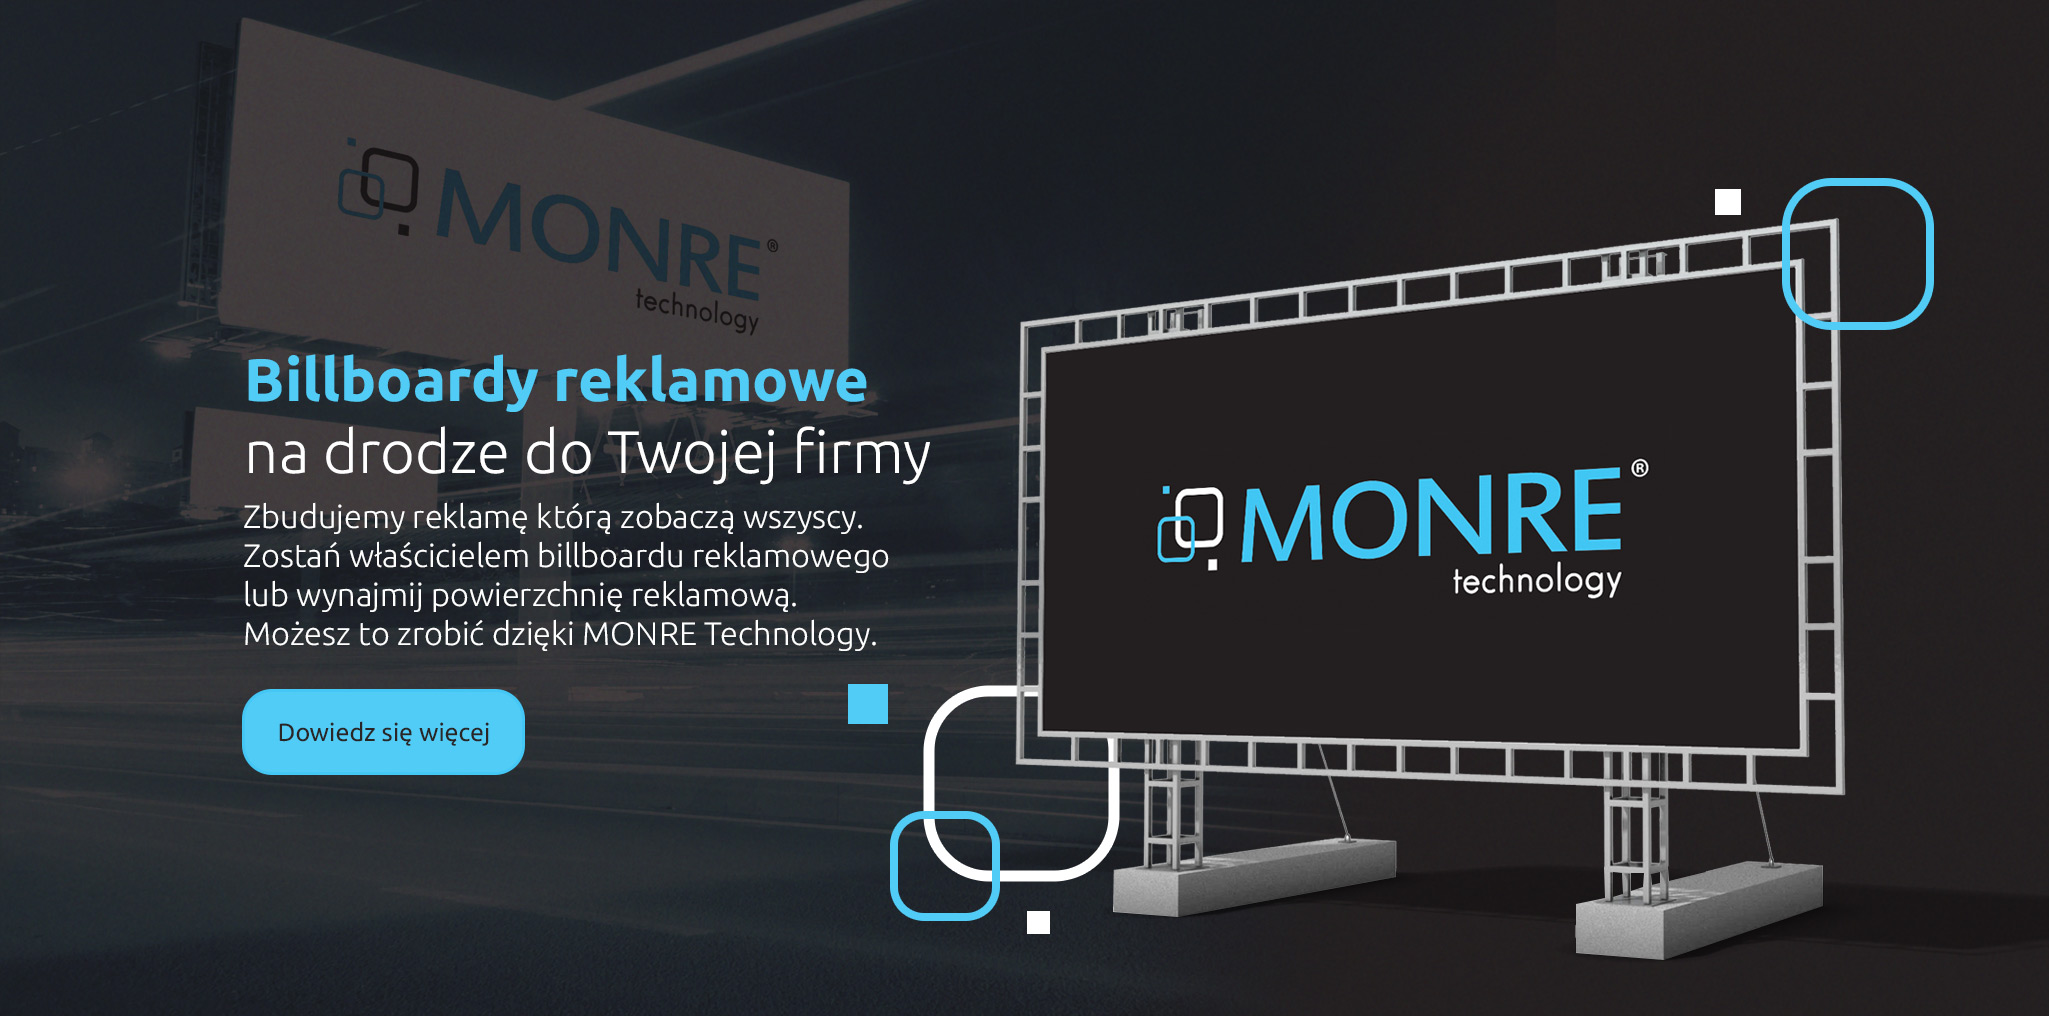 MONRE Technology - Billboardy reklamowe